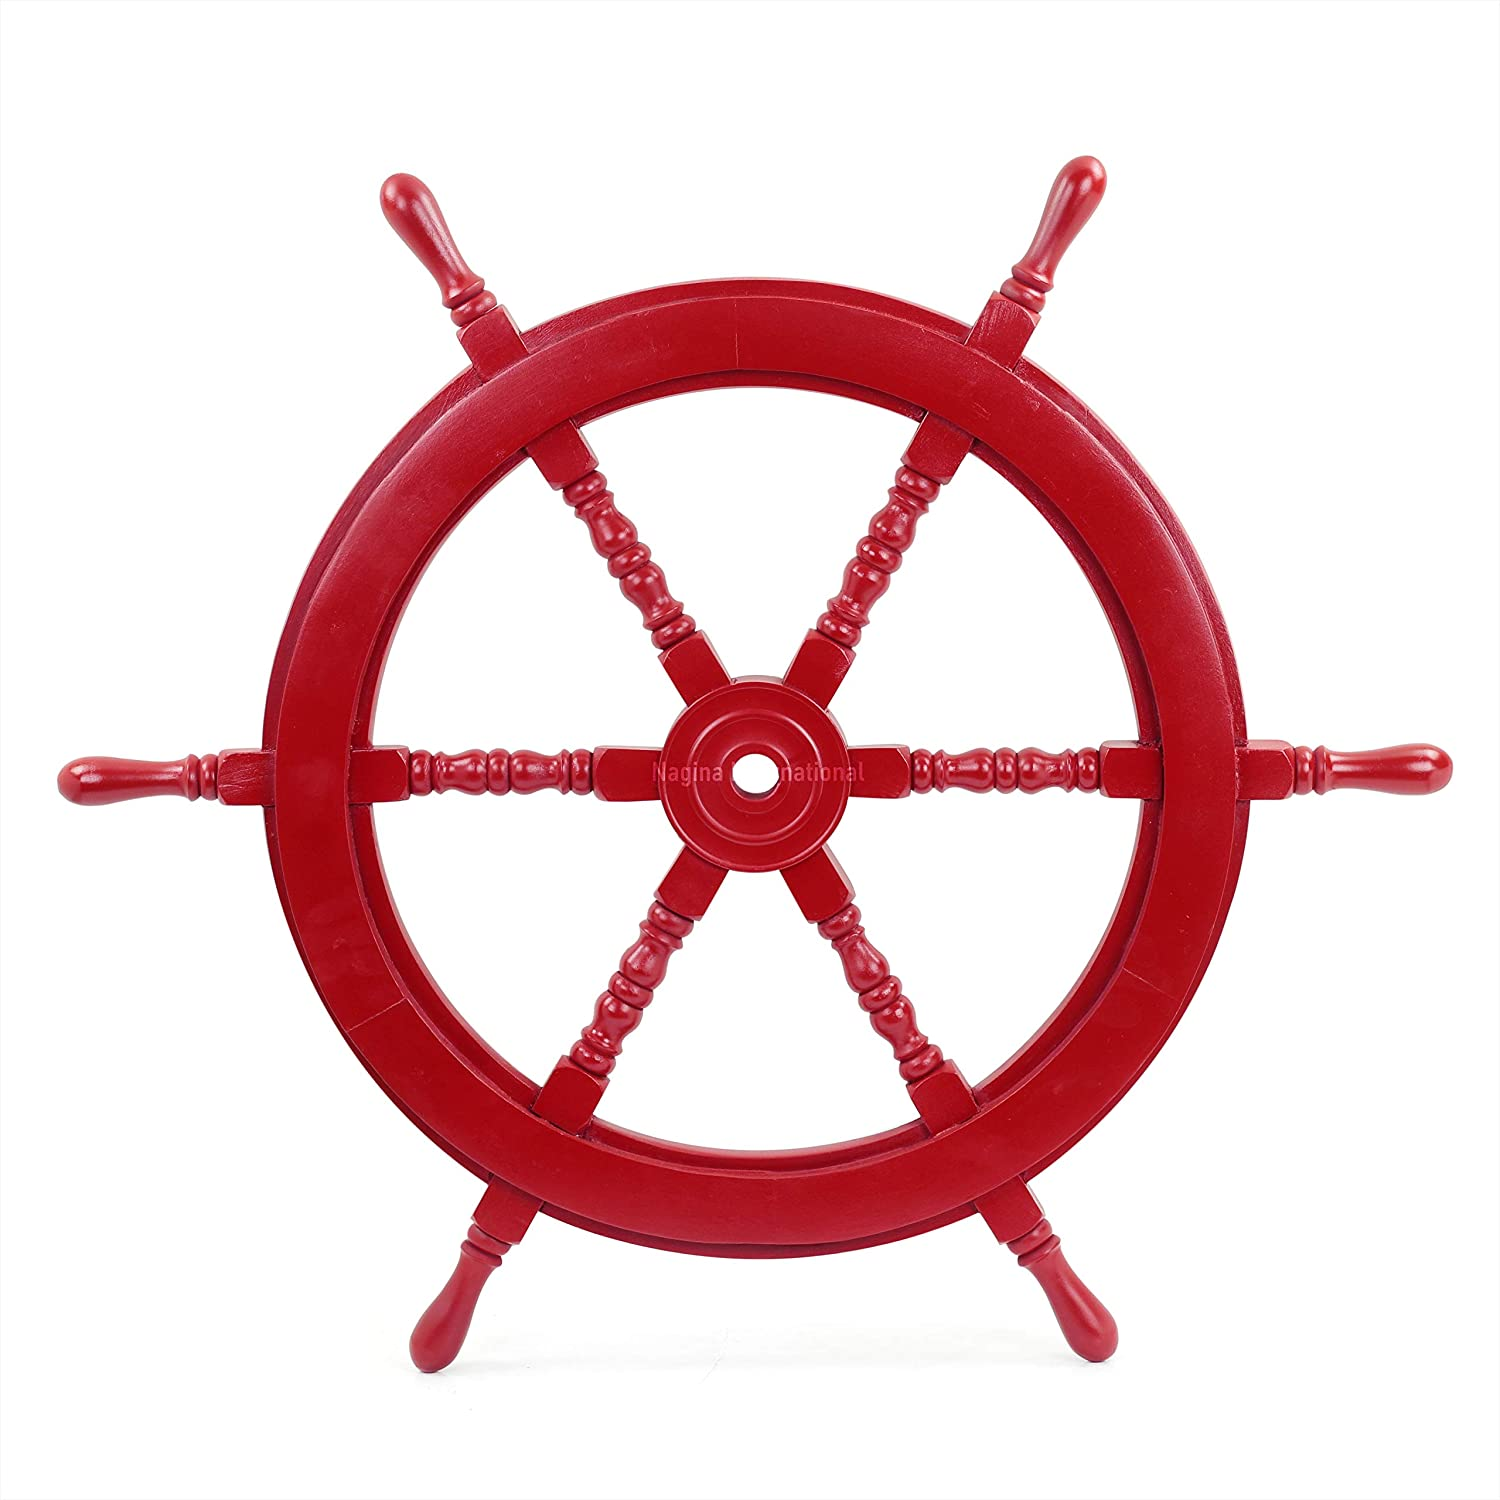 Nautical Handcrafted Wooden Ship Wheel - Home Wall Decor - Nagina International (30 Inches, Red)